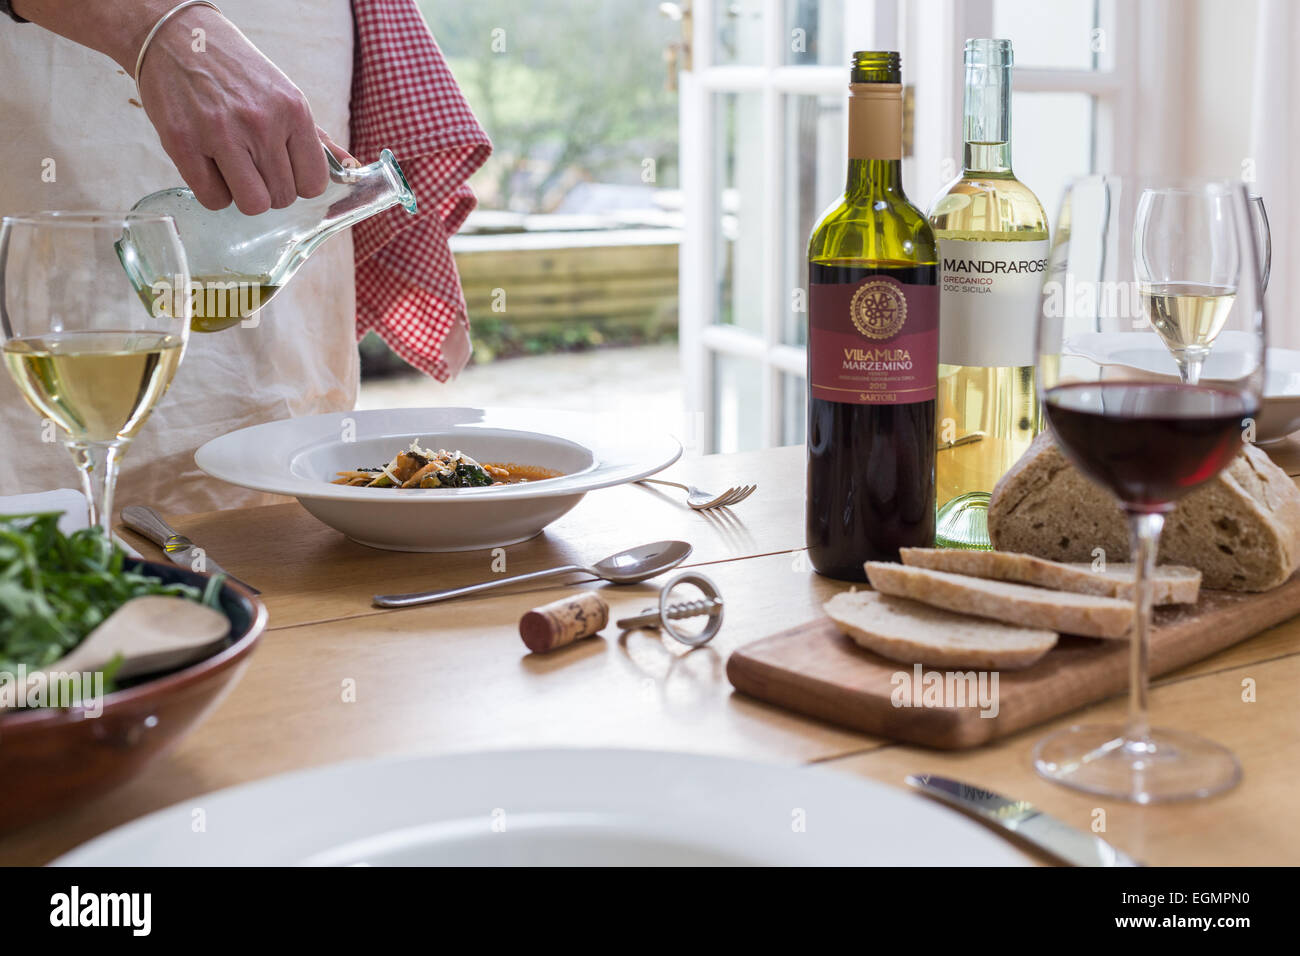 Lunch in the kitchen with wine - Stock Image